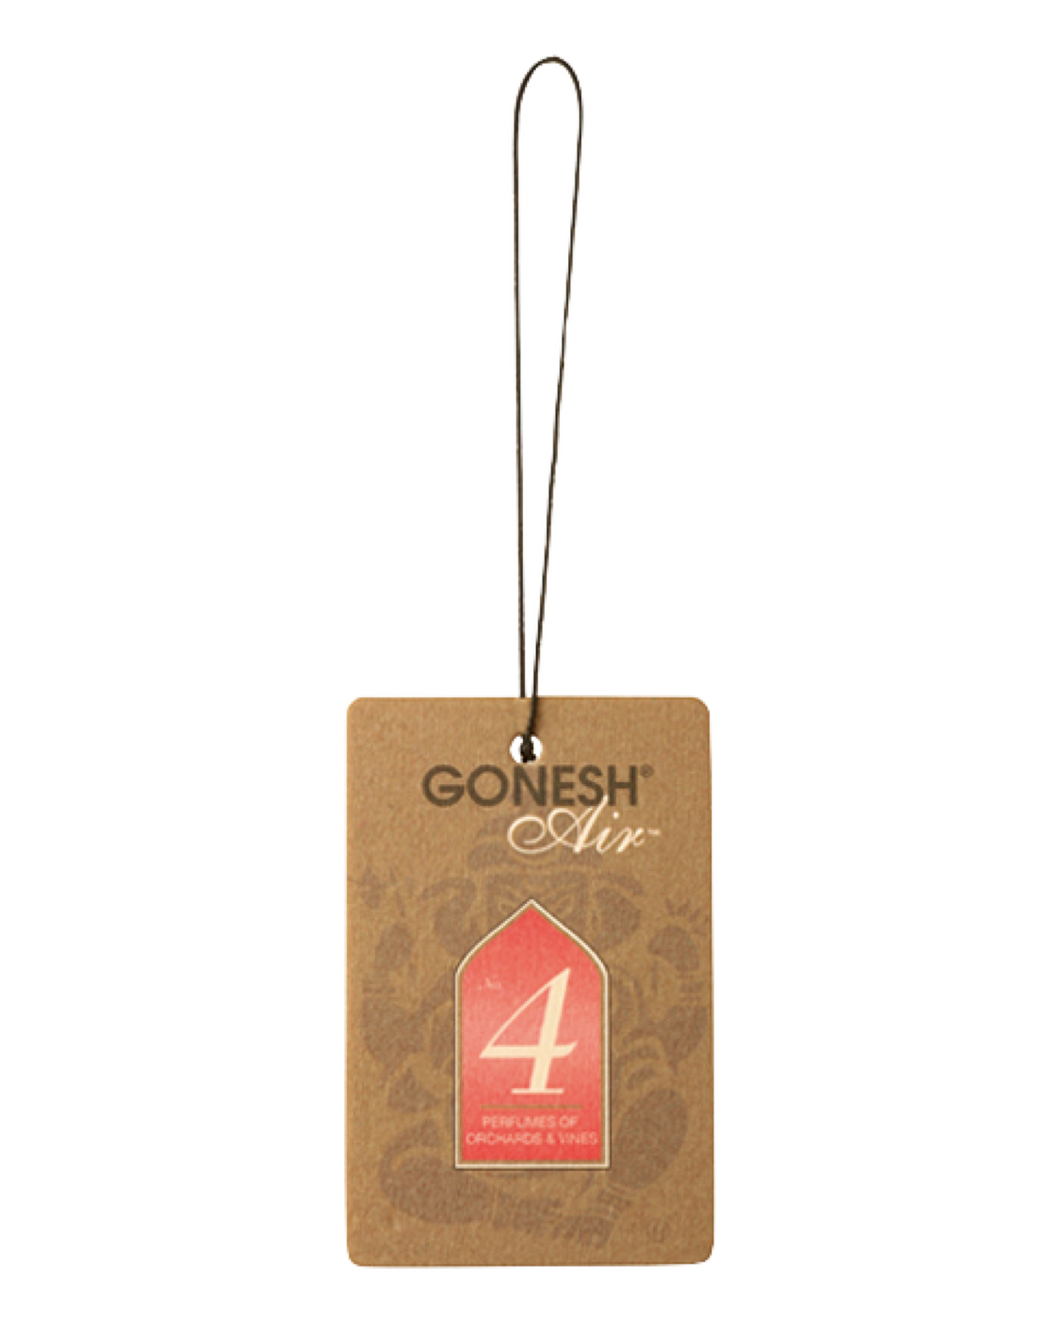 Gonesh Hanging Air Freshener No. 4